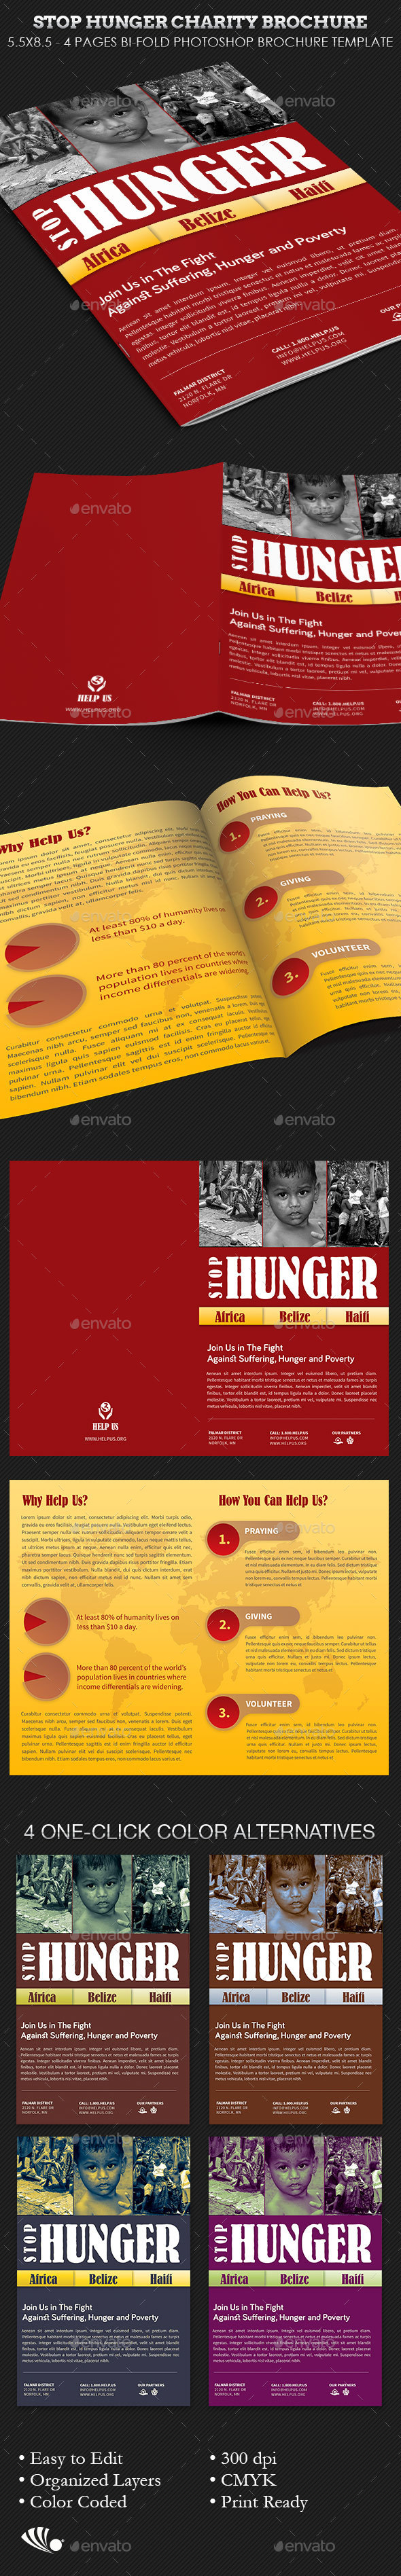 Stop Hunger Charity Brochure Template - Informational Brochures